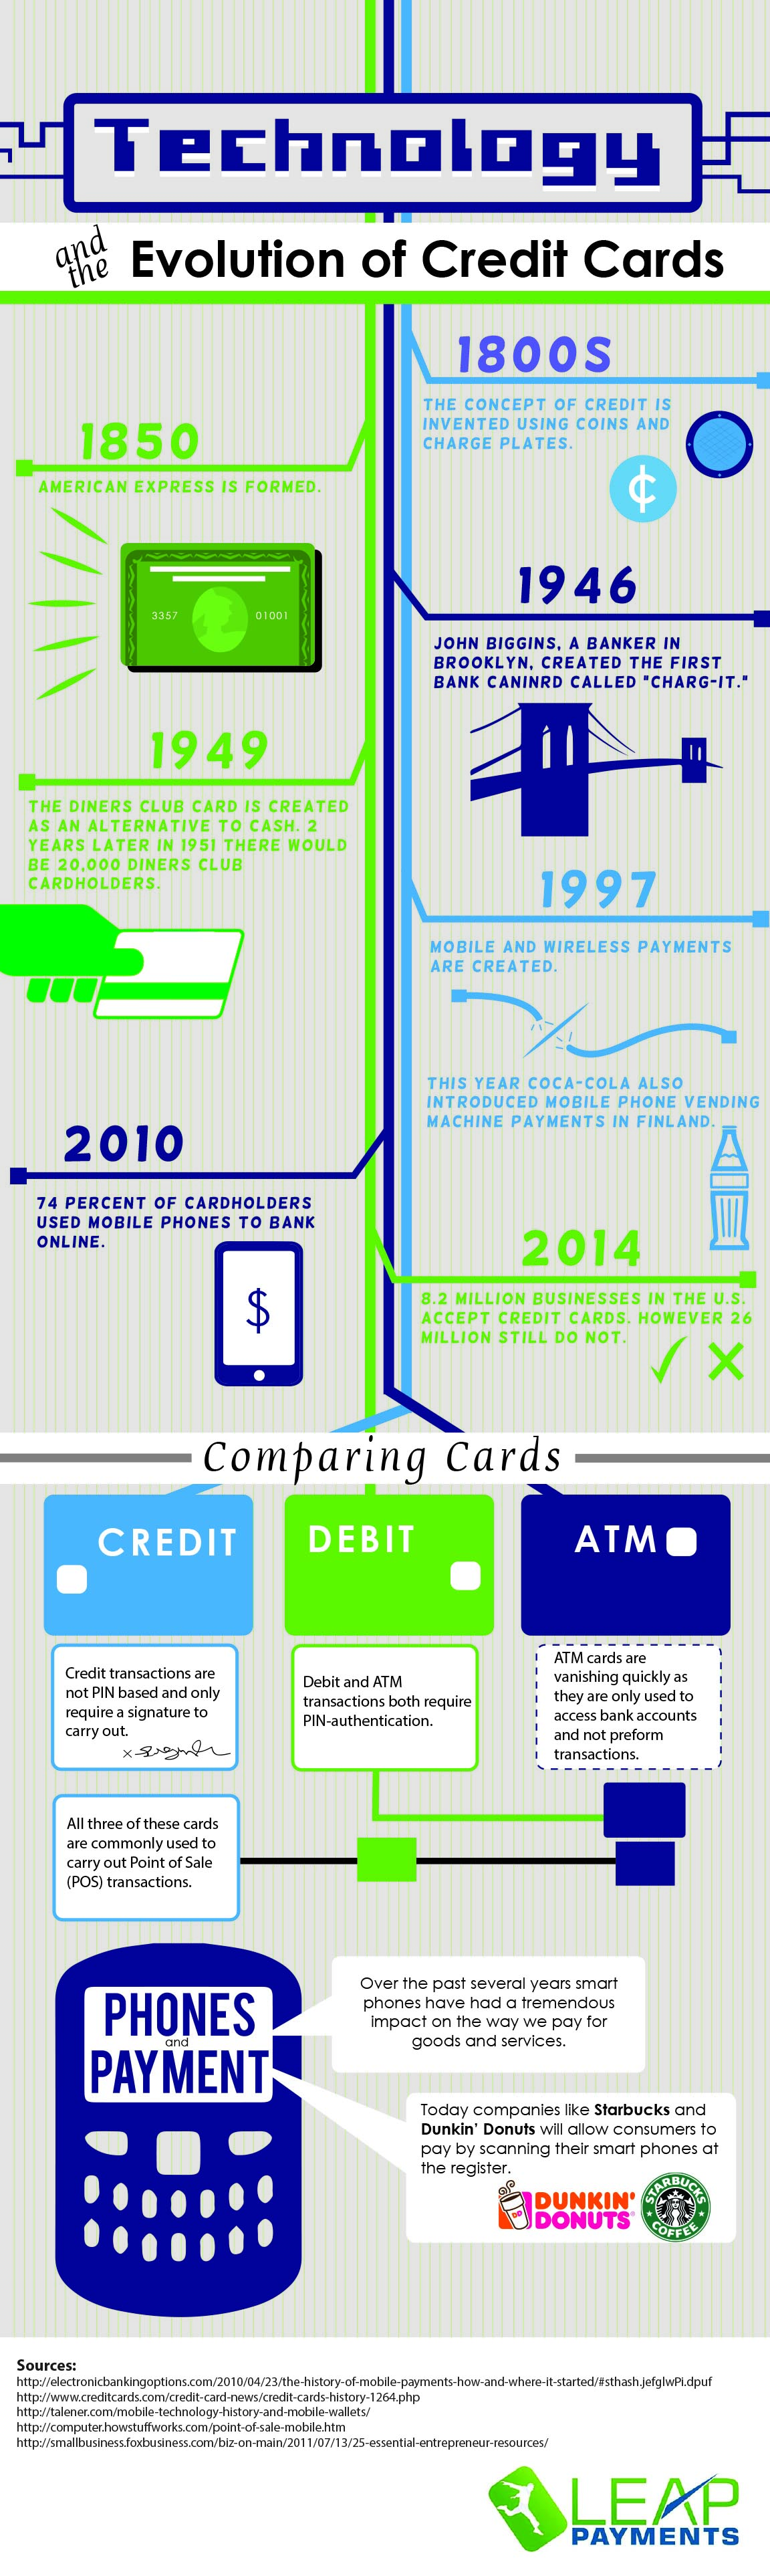 Evolution of Credit Cards | Leap Payments